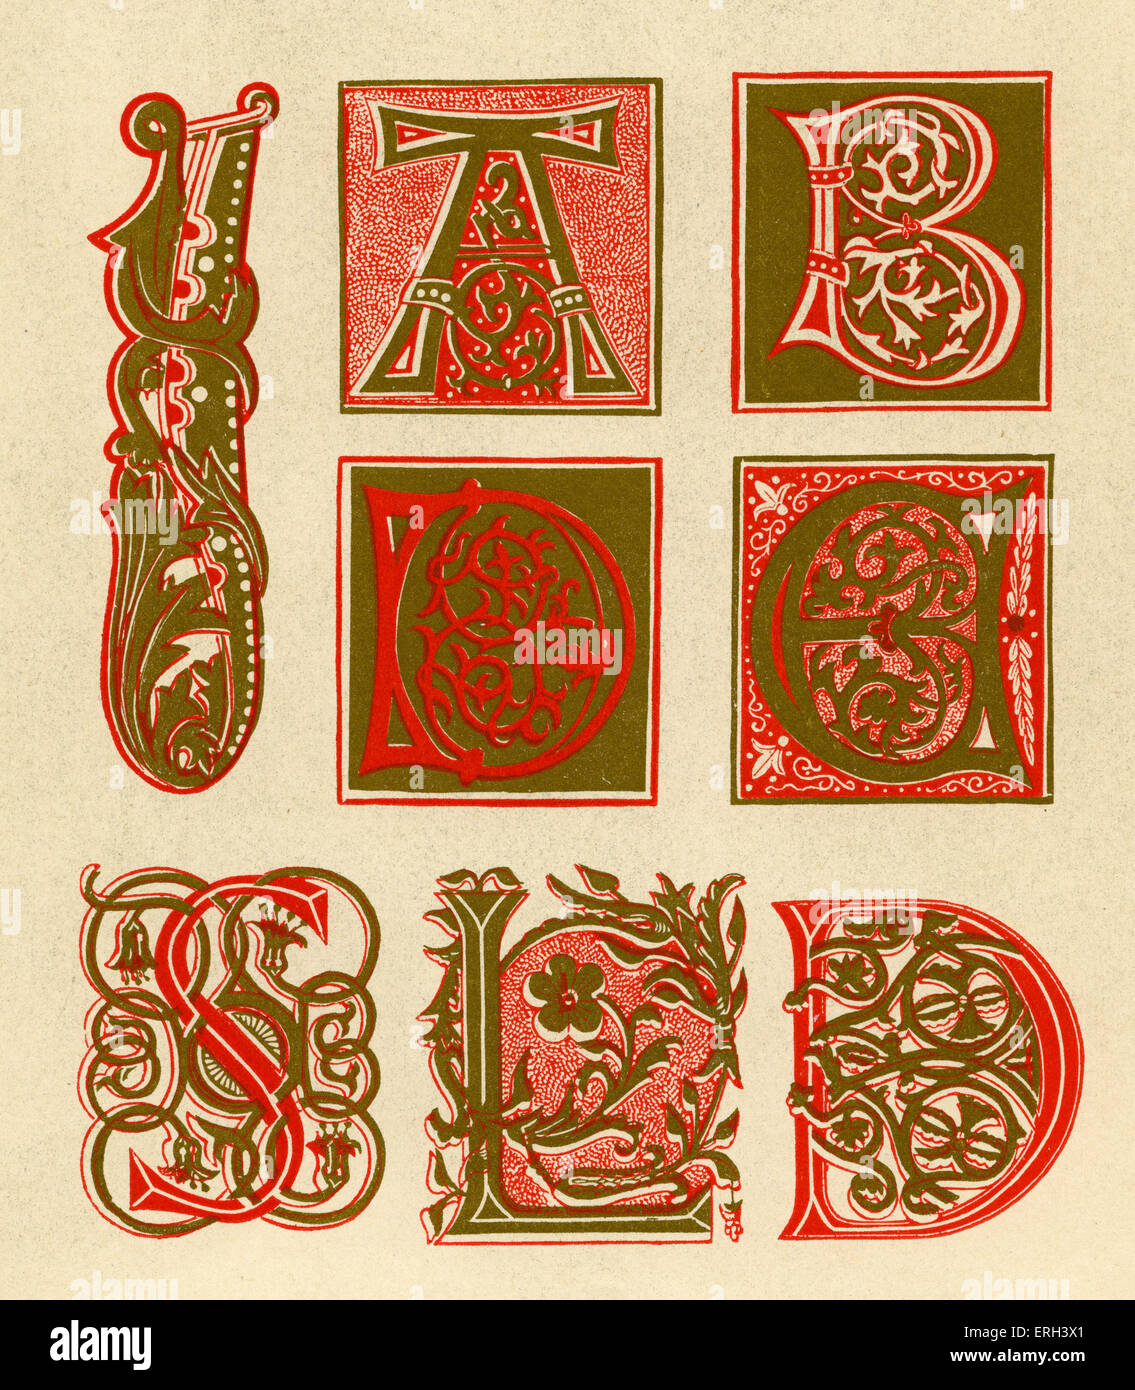 Illuminated letters A, B, C, D, S, L and I.  Fifteenth century. Red and gold. (1886 source). - Stock Image